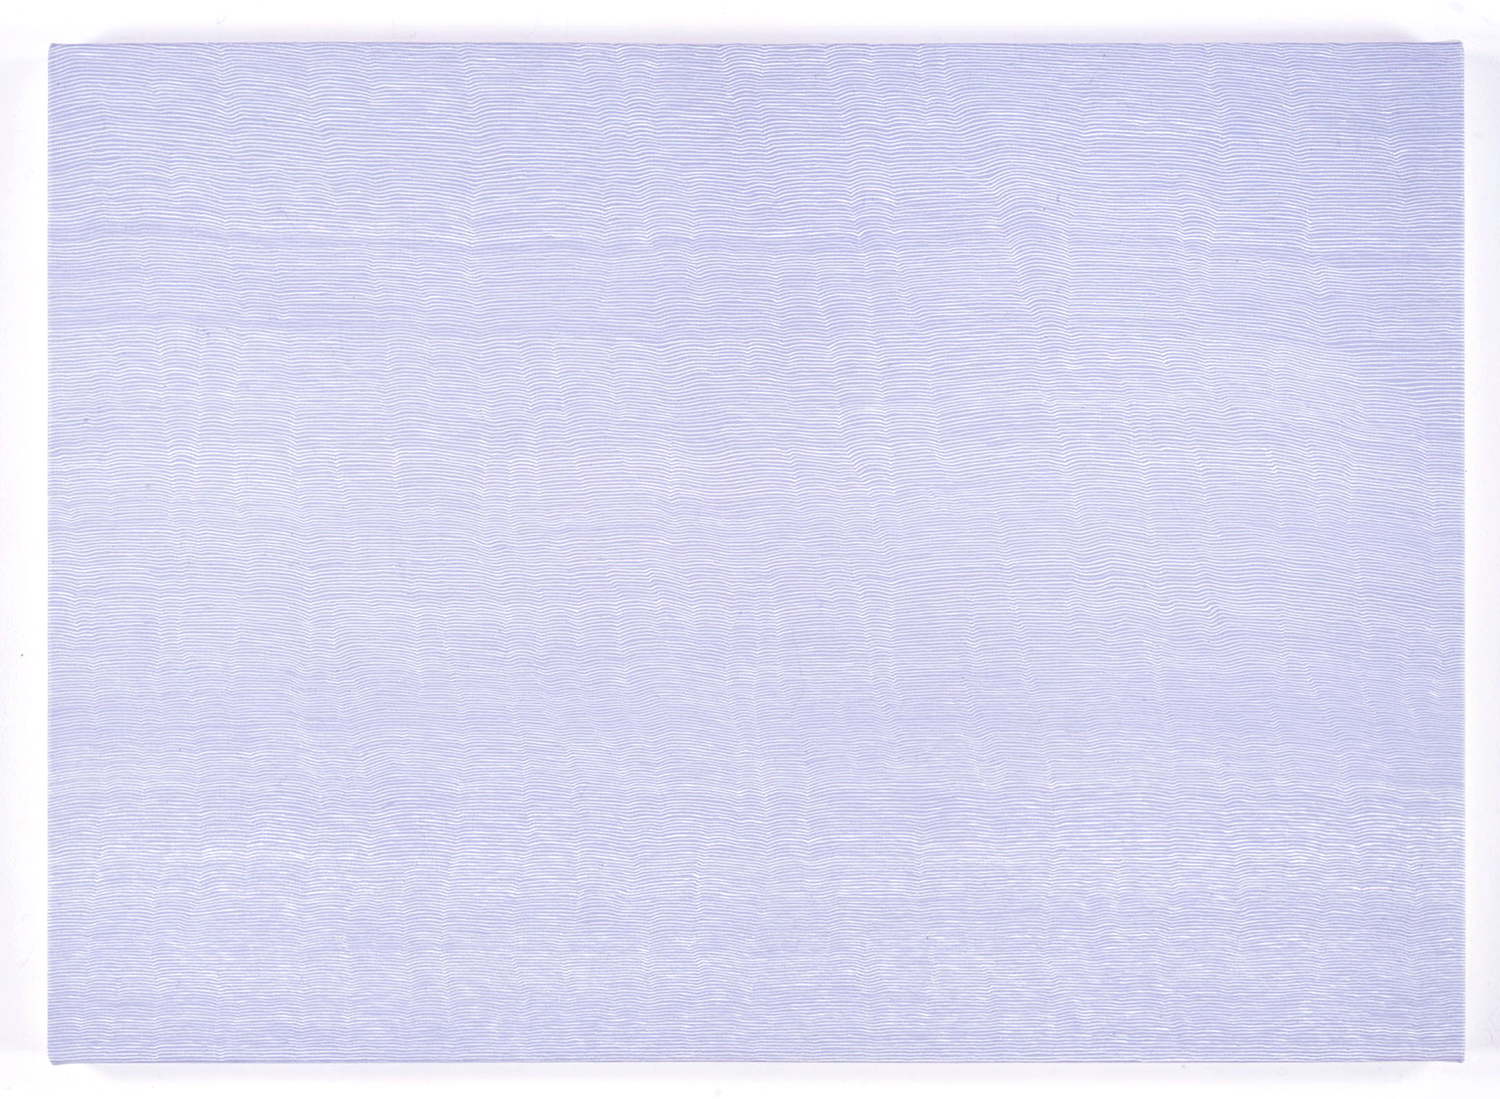 Untitled-Breathe  BLUE<br>Acrylic & gesso on canvas, 56.5 x 78 cm 1996